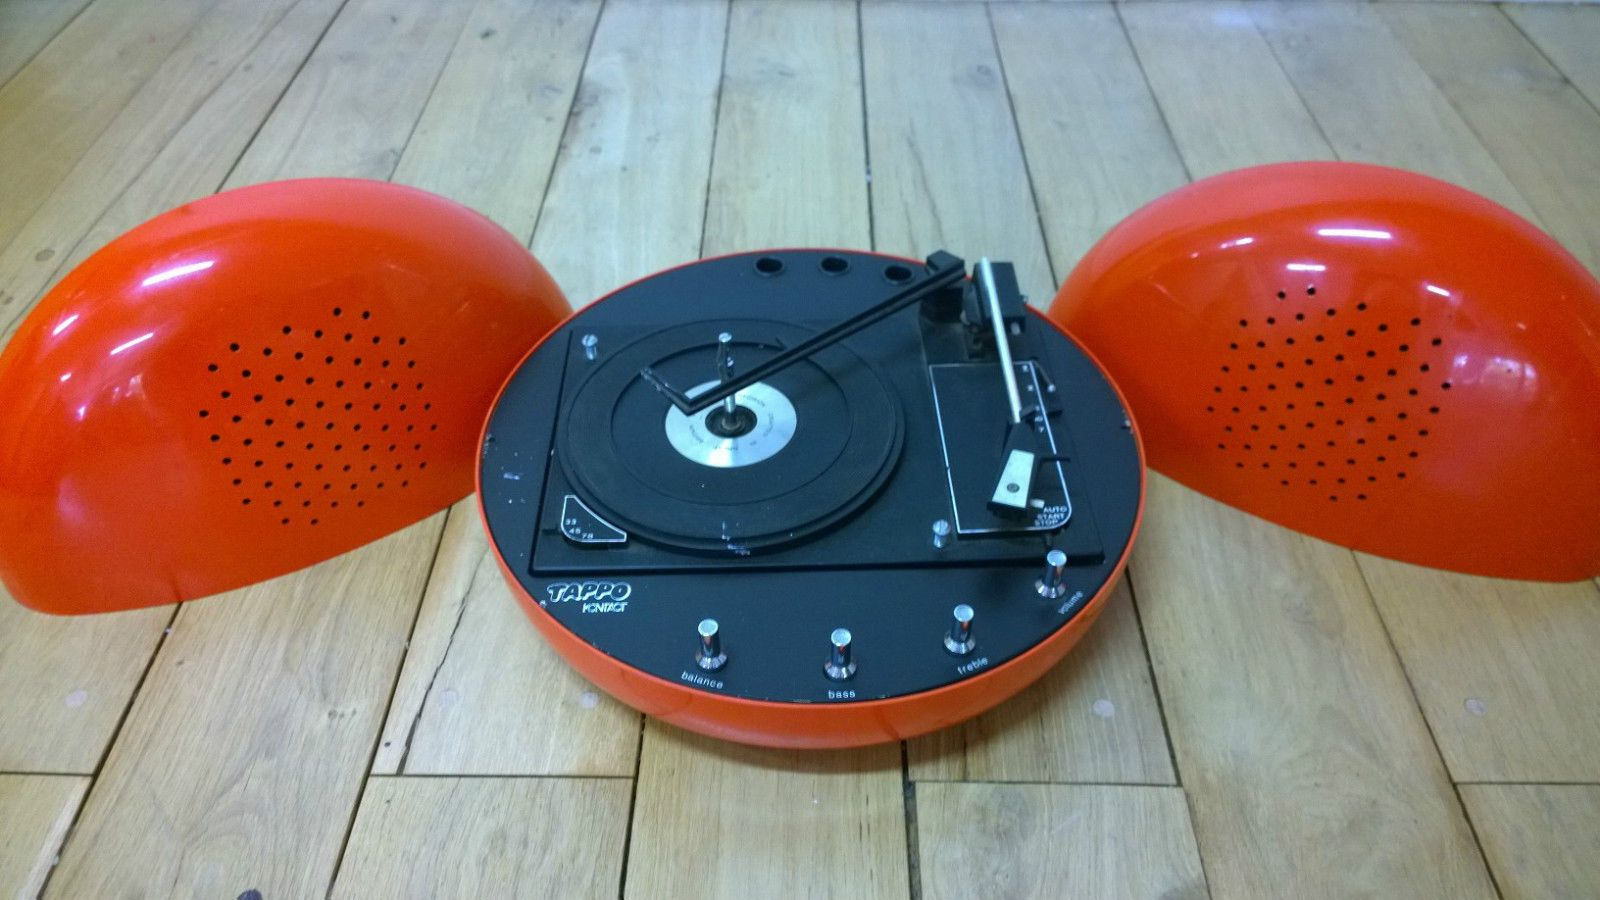 tourne disque tappo kontact annees 70 space age turntable bsr weltron brionvega 60 39 s 70 39 s. Black Bedroom Furniture Sets. Home Design Ideas